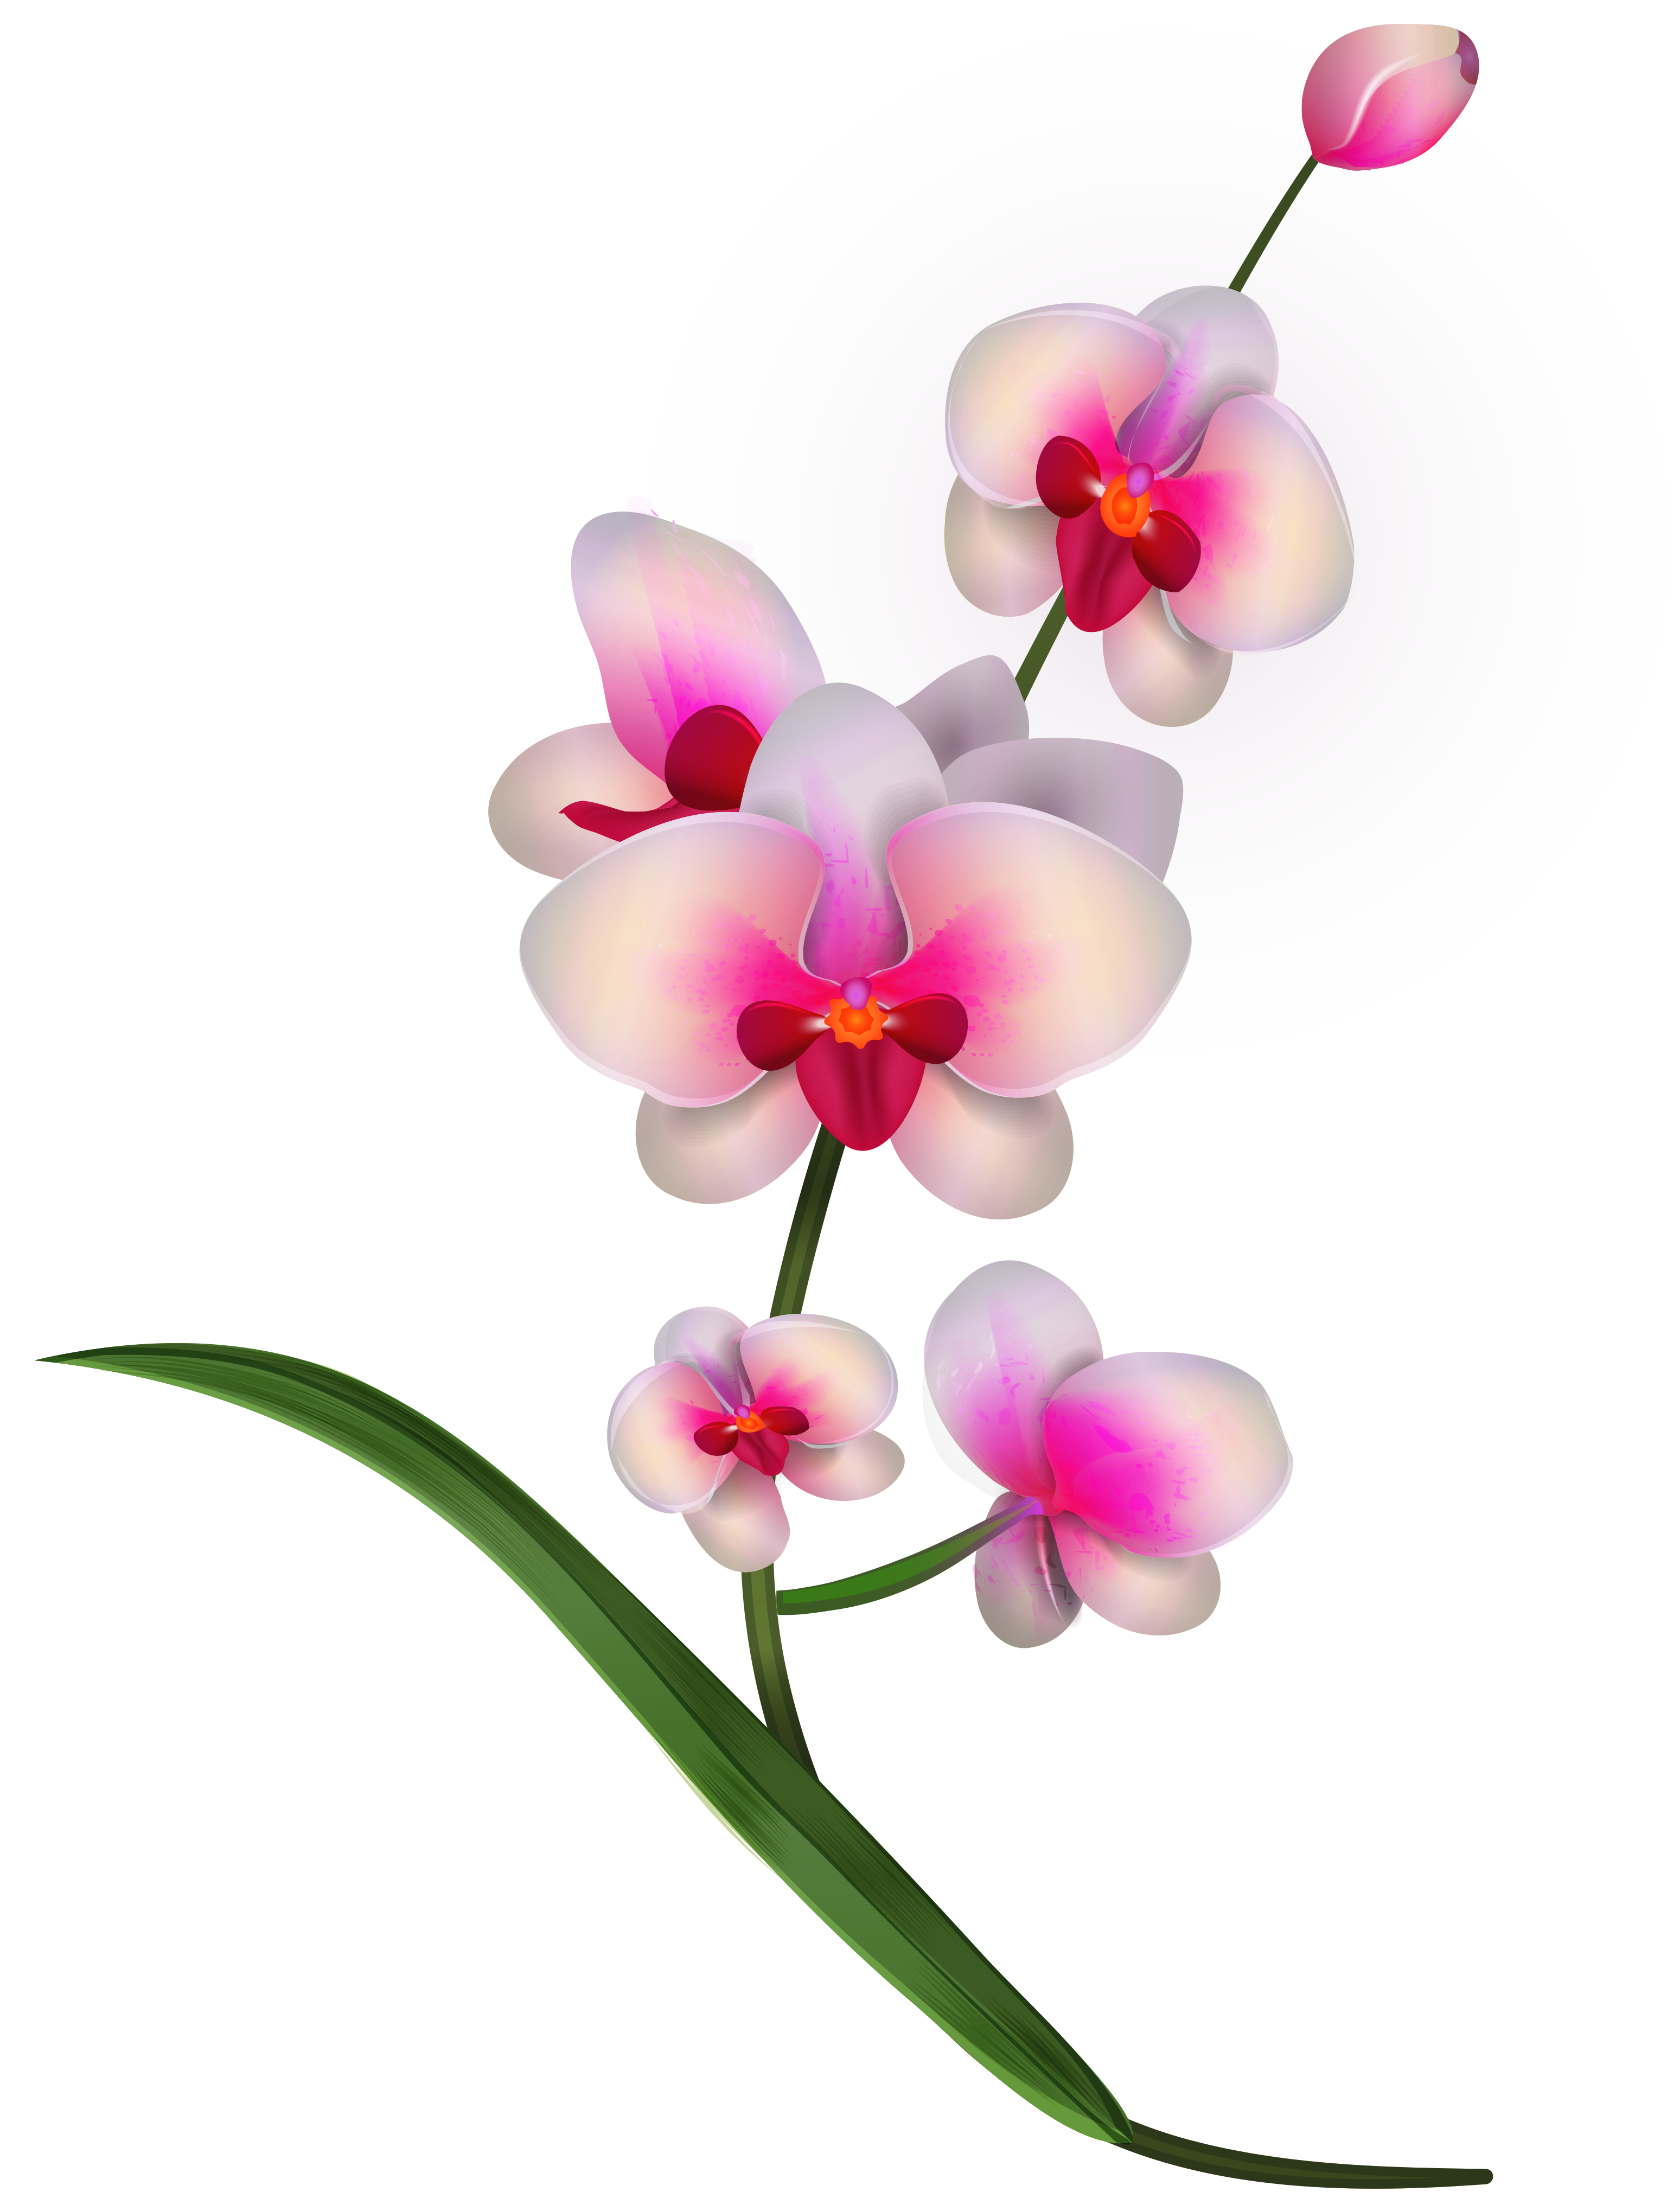 Orchid clipart Yopriceville size Image PNG Quality